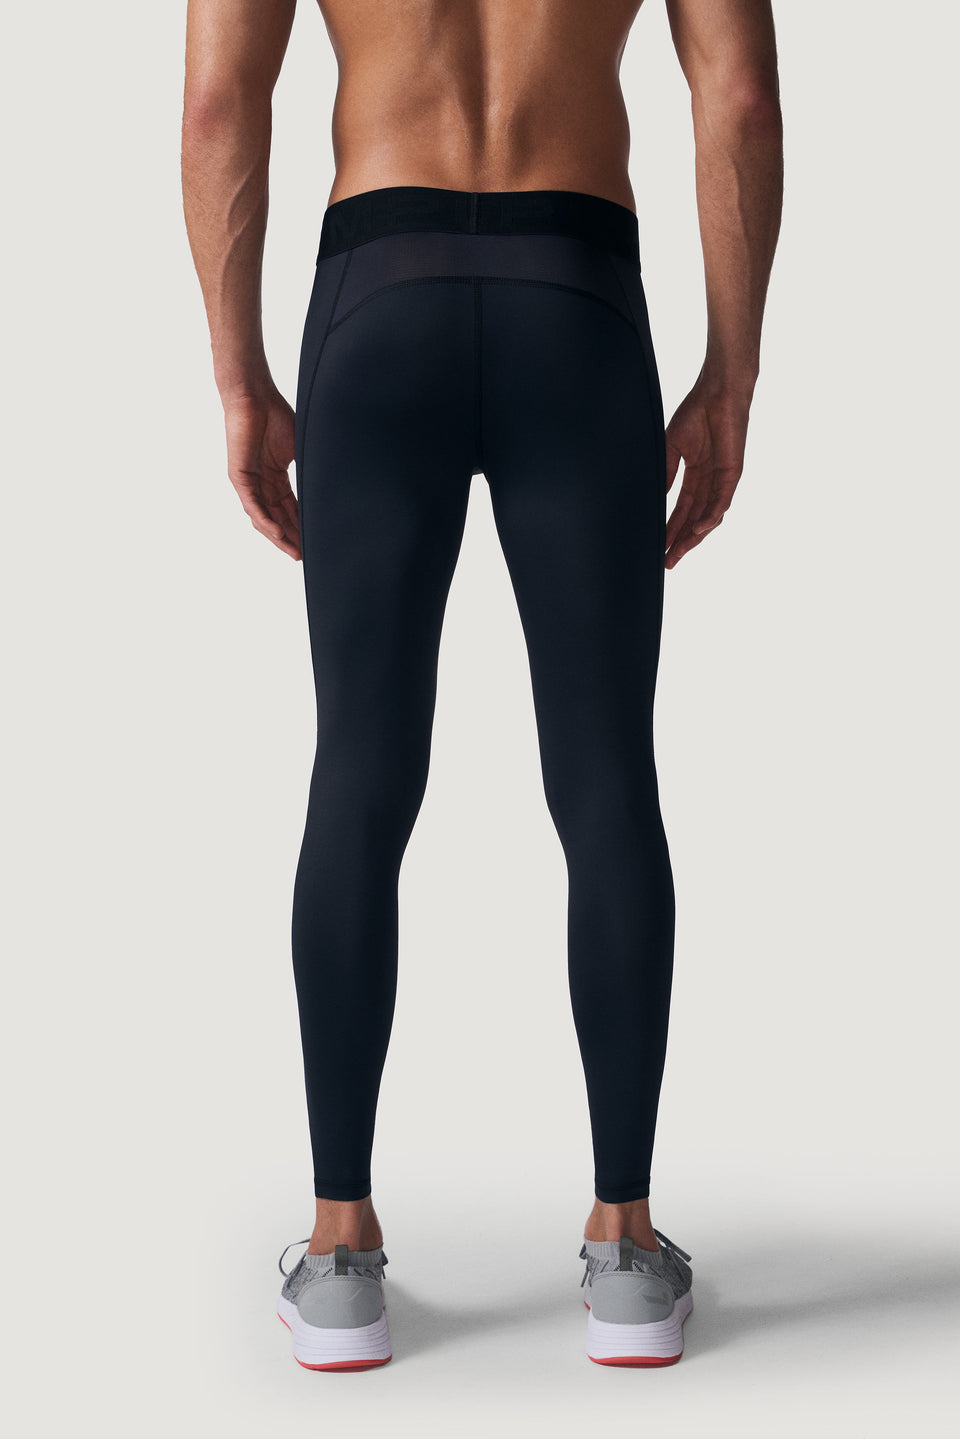 Alpha DRIVE Men's Full Compression Pant